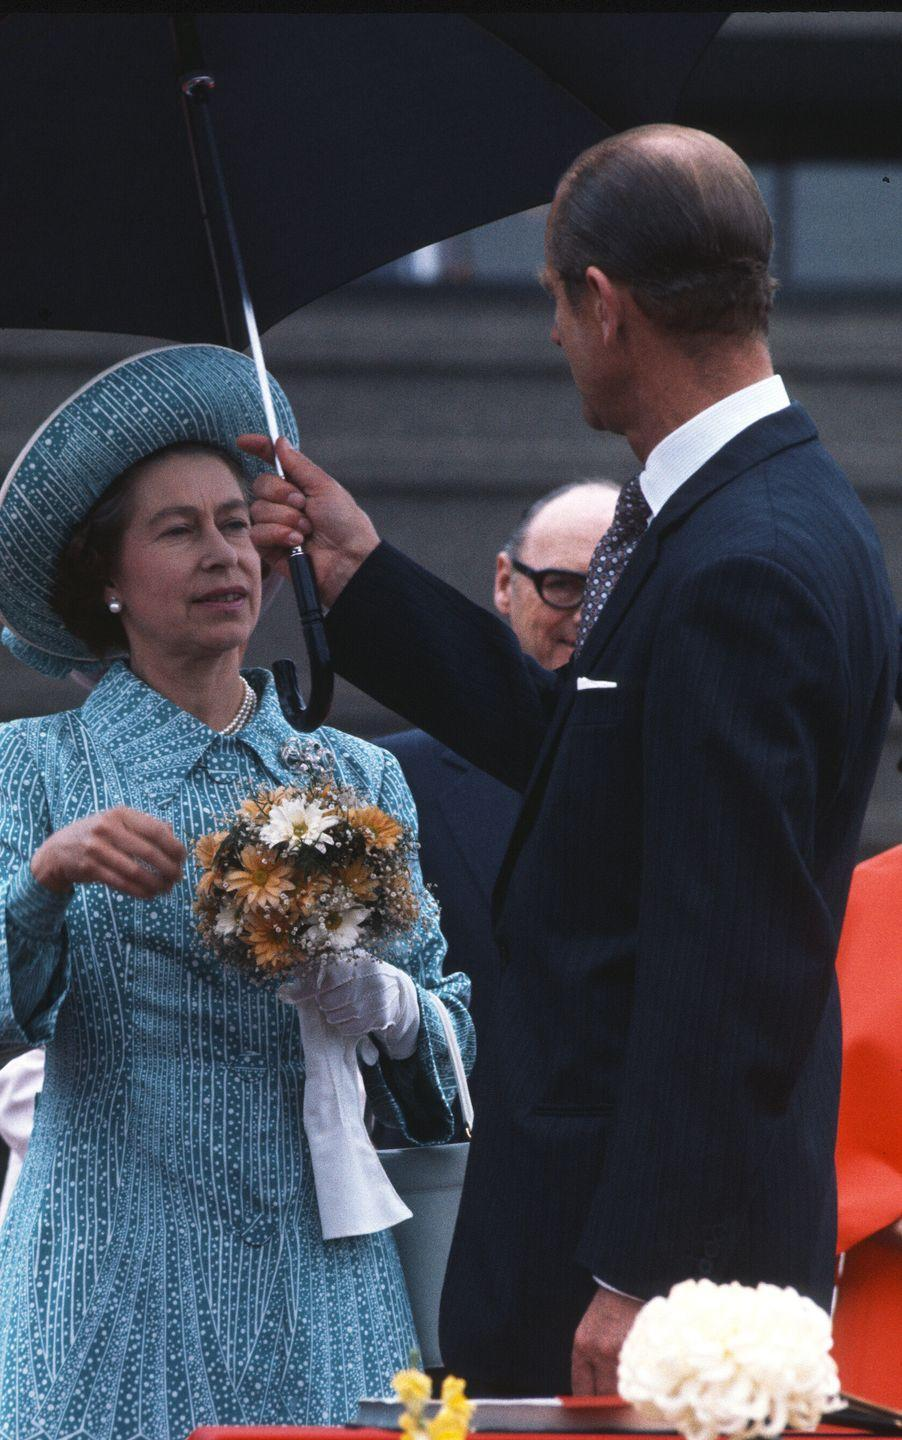 <p>Prince Philip, Duke of Edinburgh, holds an umbrella to shelter the Queen from the rain during their royal tour of Canada in 1976.<br></p>